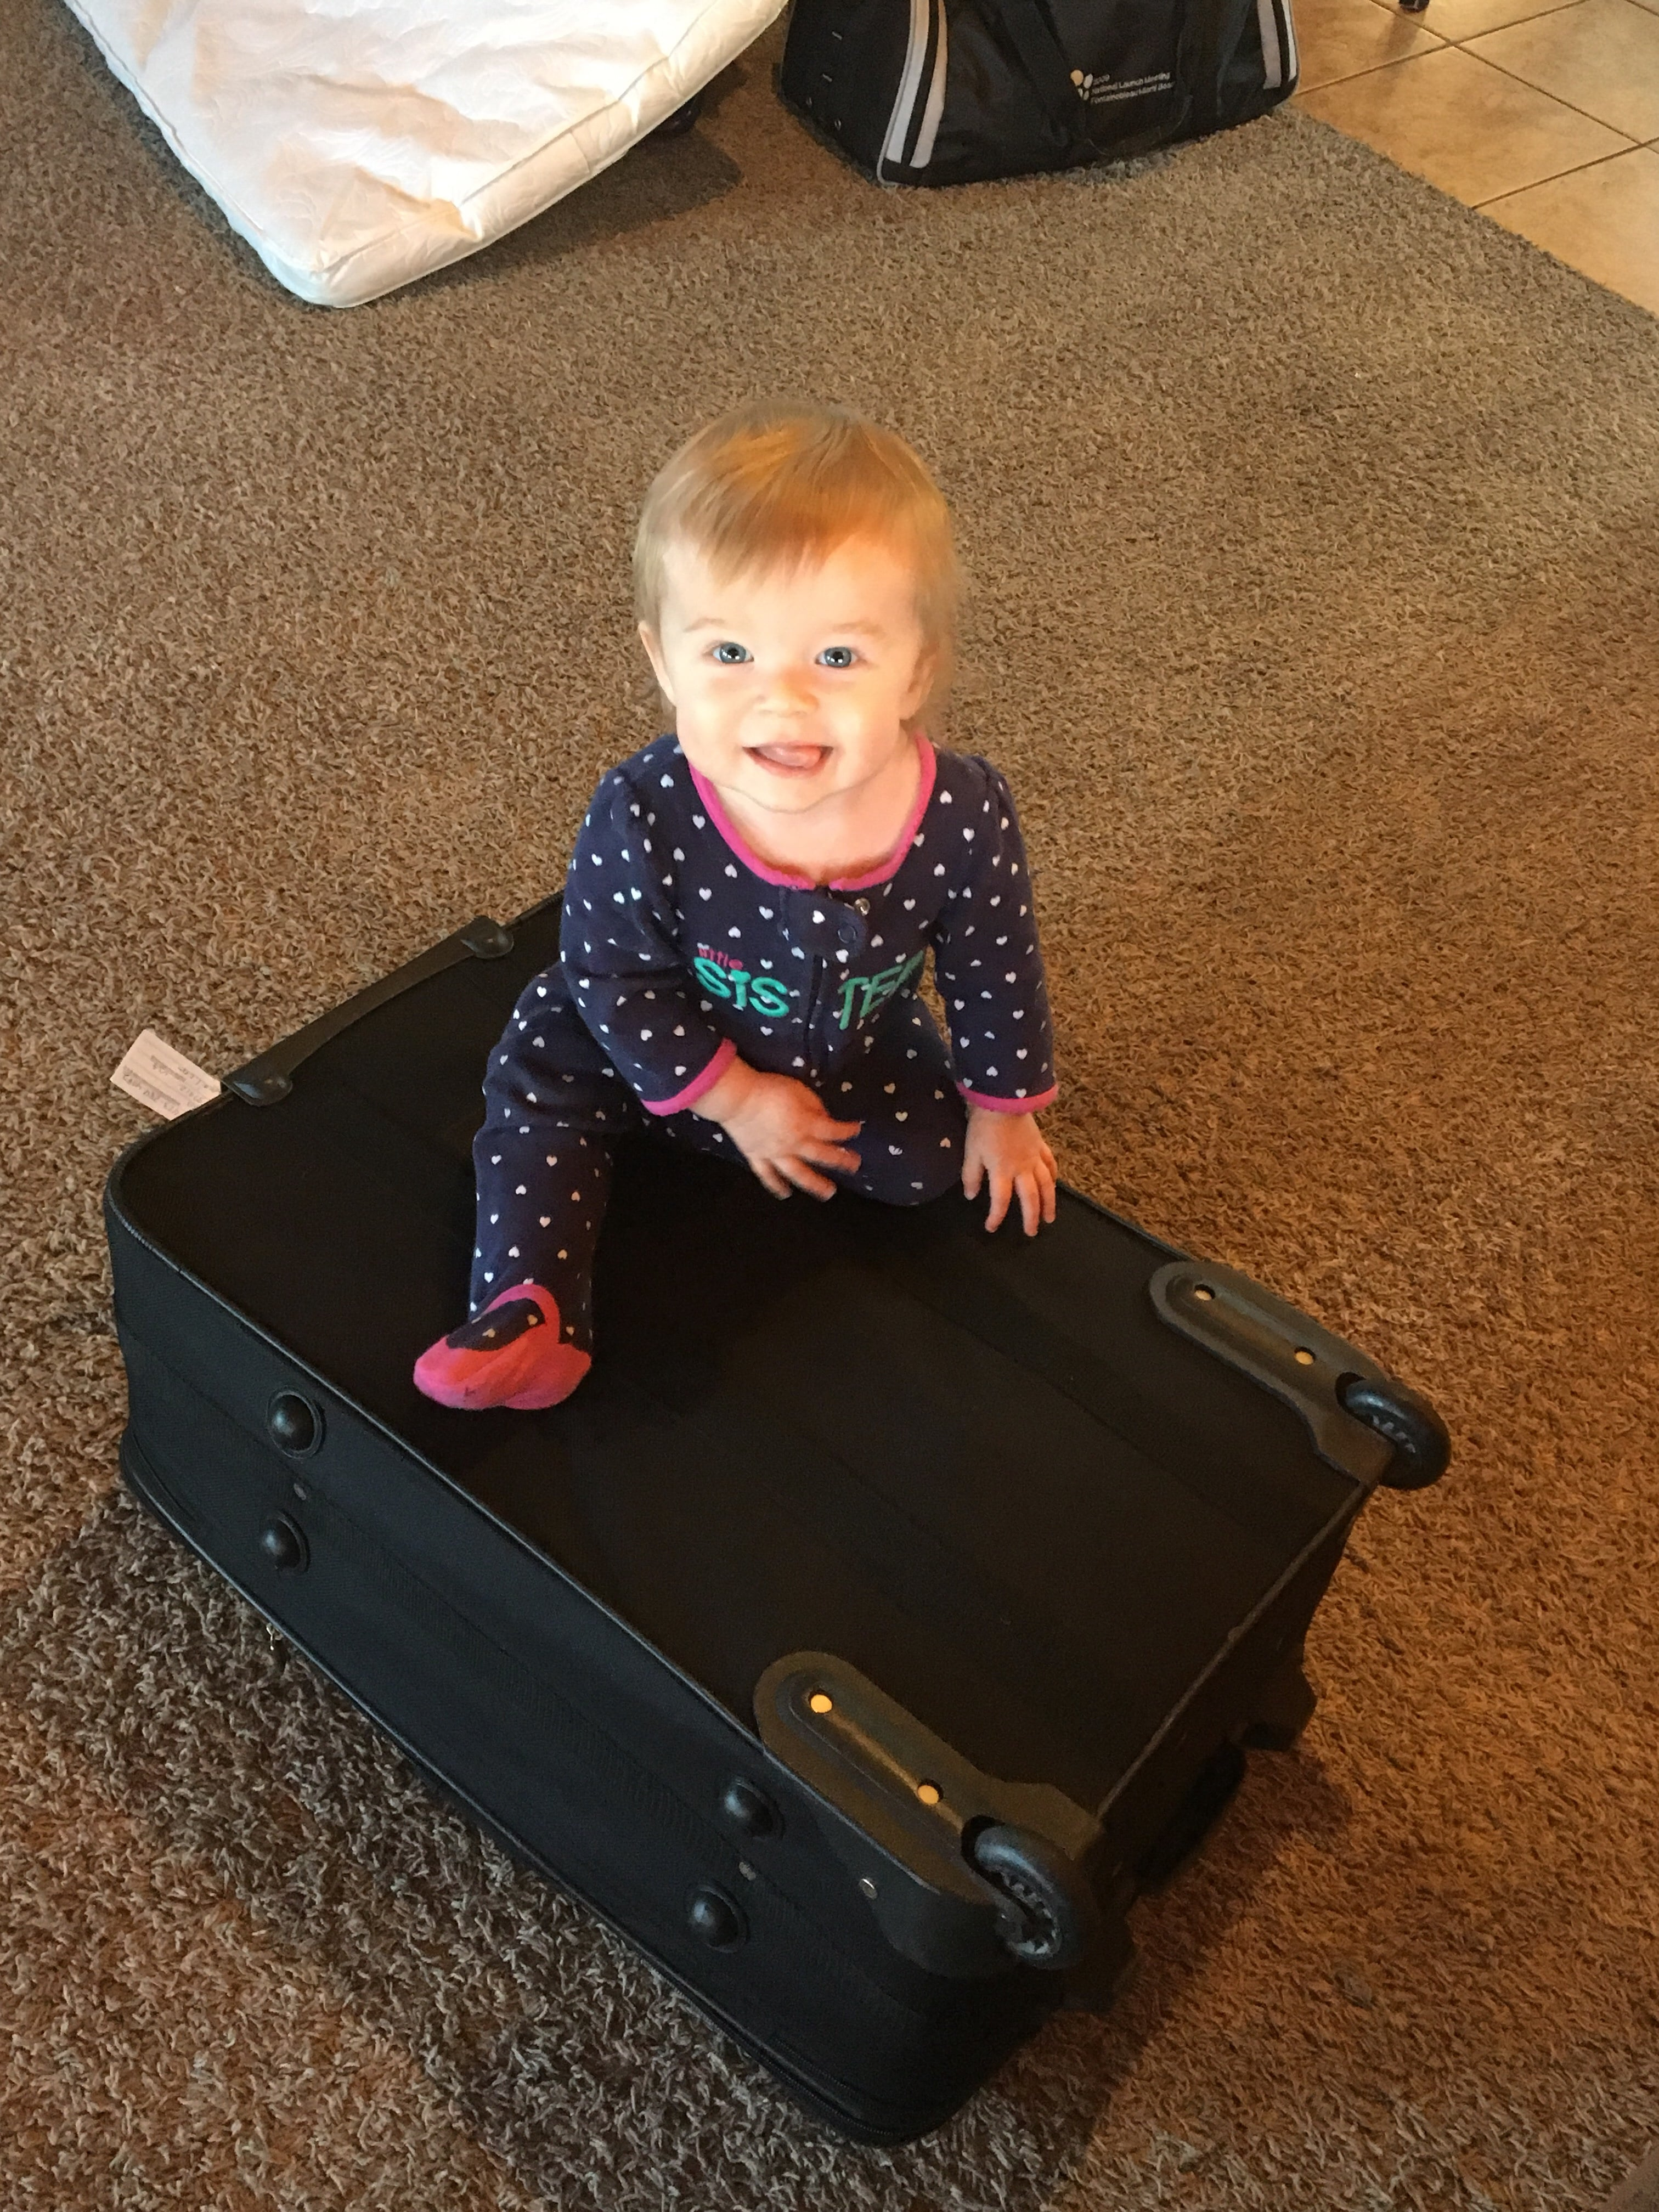 baby on a suitcase